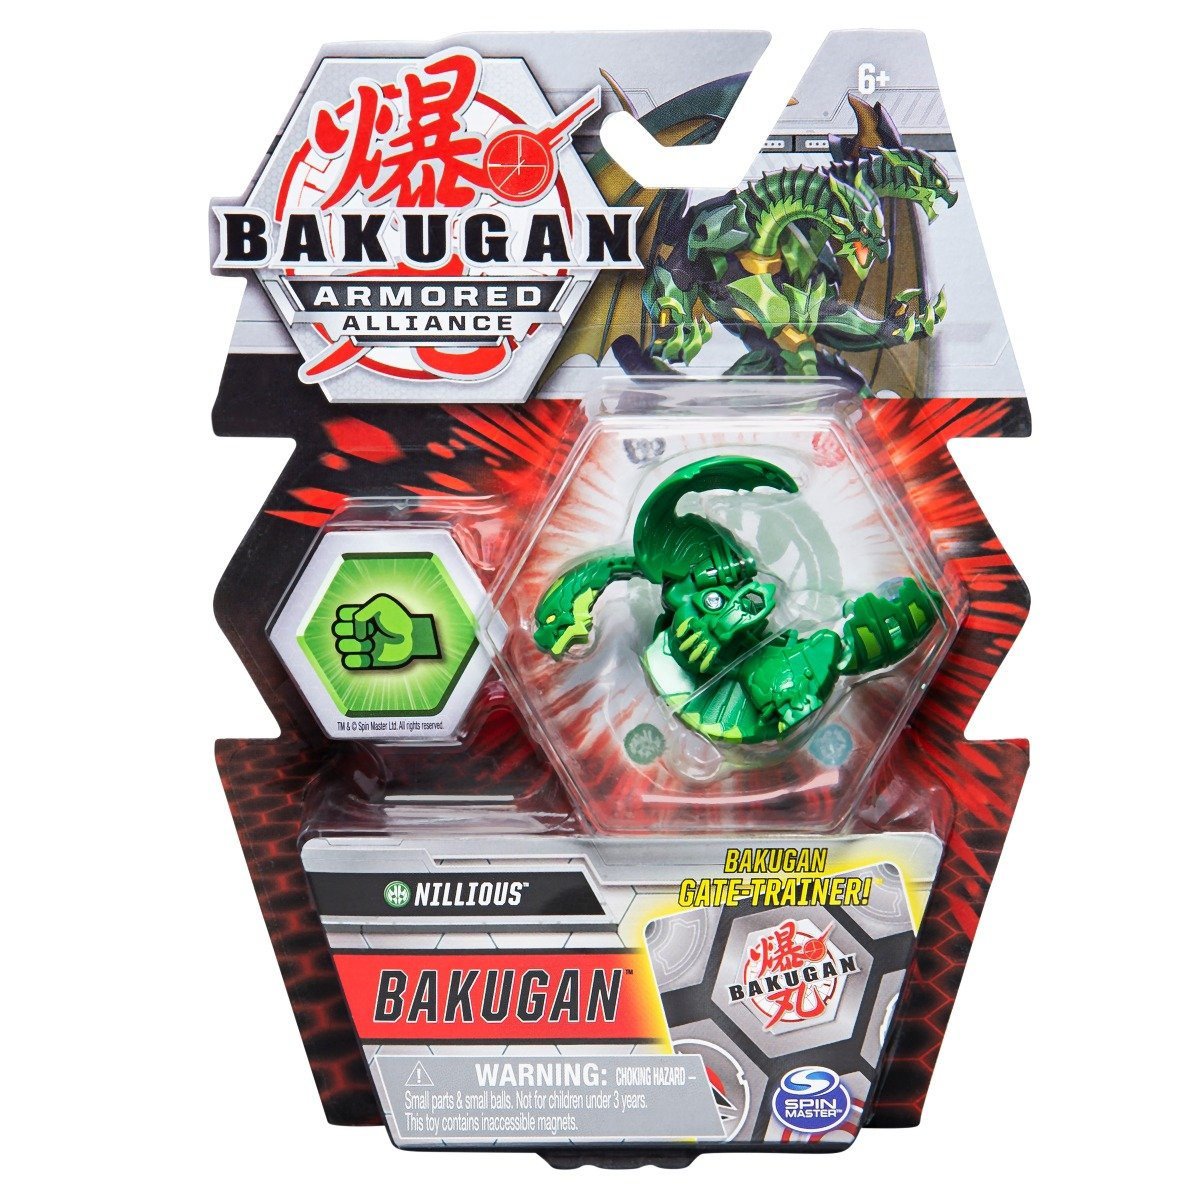 Figurina Bakugan Armored Alliance, Nillious, 20124098